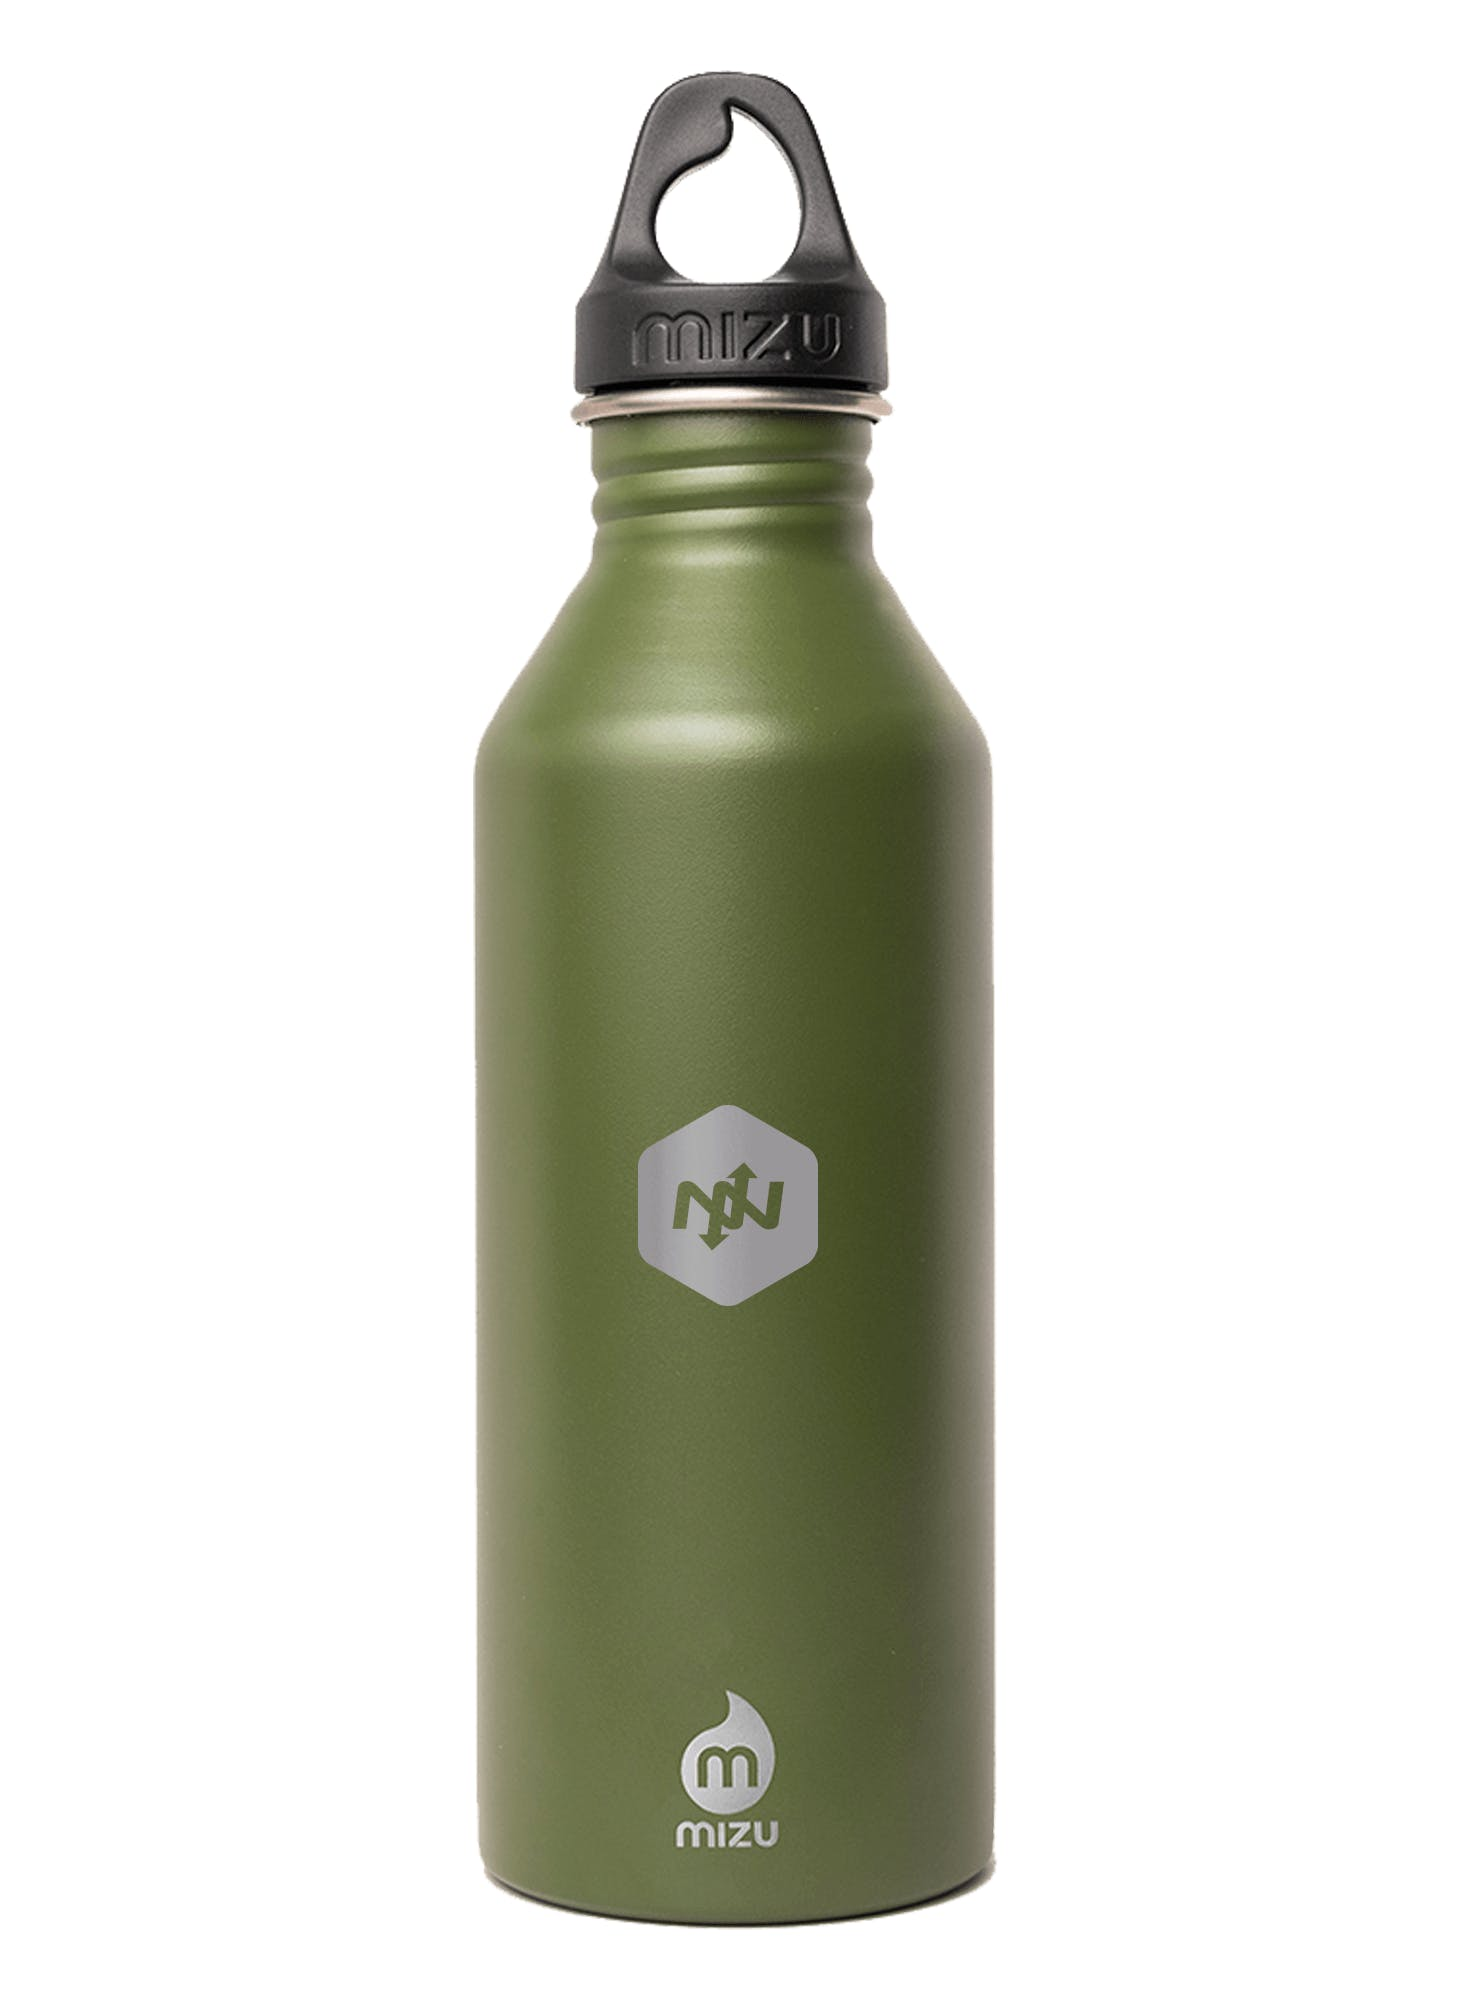 M8 Water Bottle Bonus Image